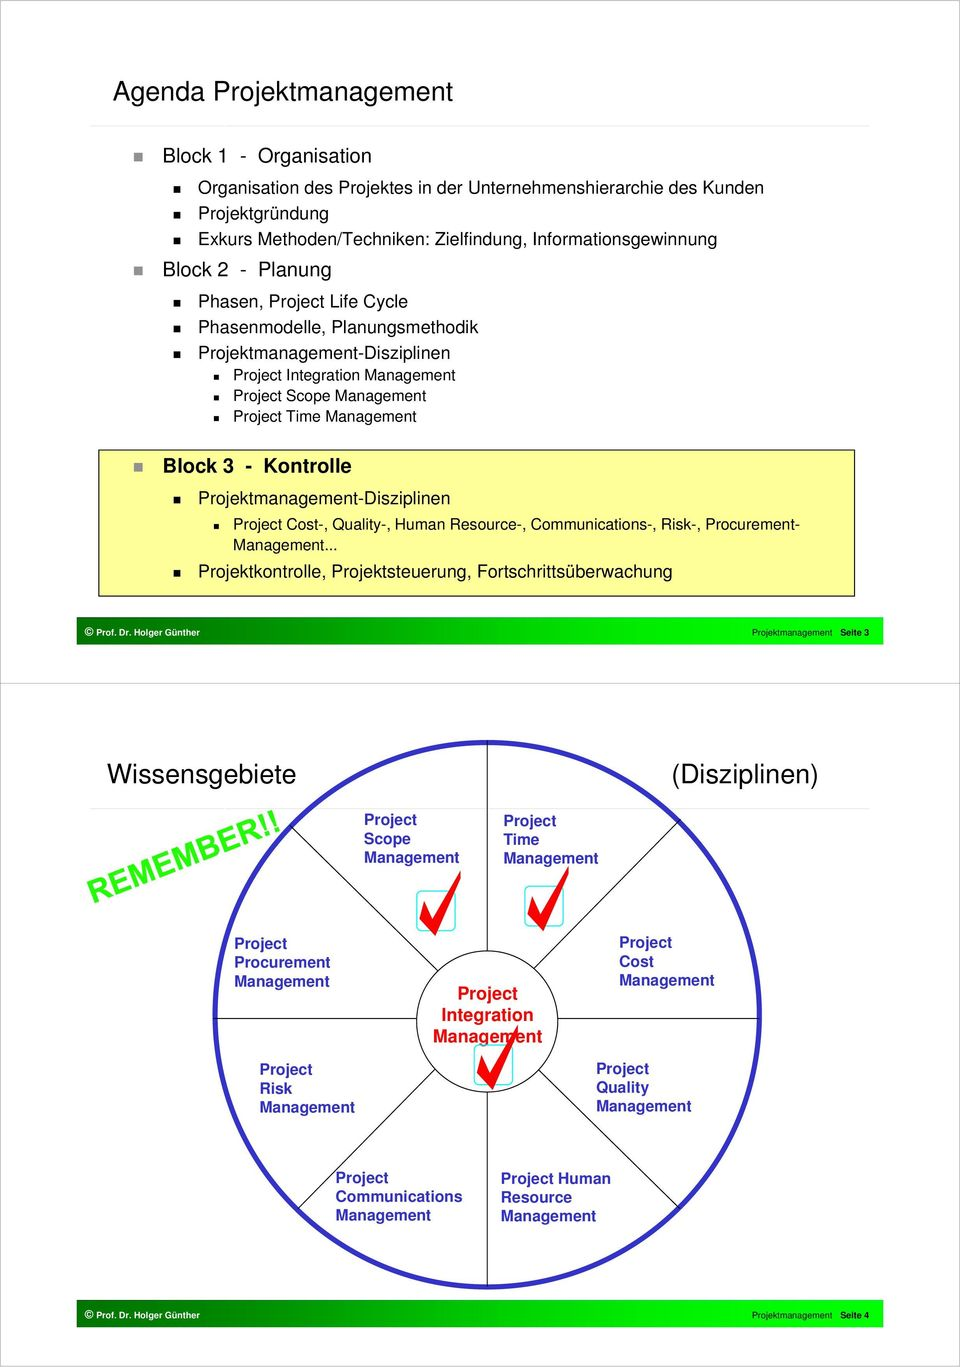 Kontrolle Projektmanagement-Disziplinen Project Cost-, Quality-, Human Resource-, Communications-, Risk-, Procurement- Management.